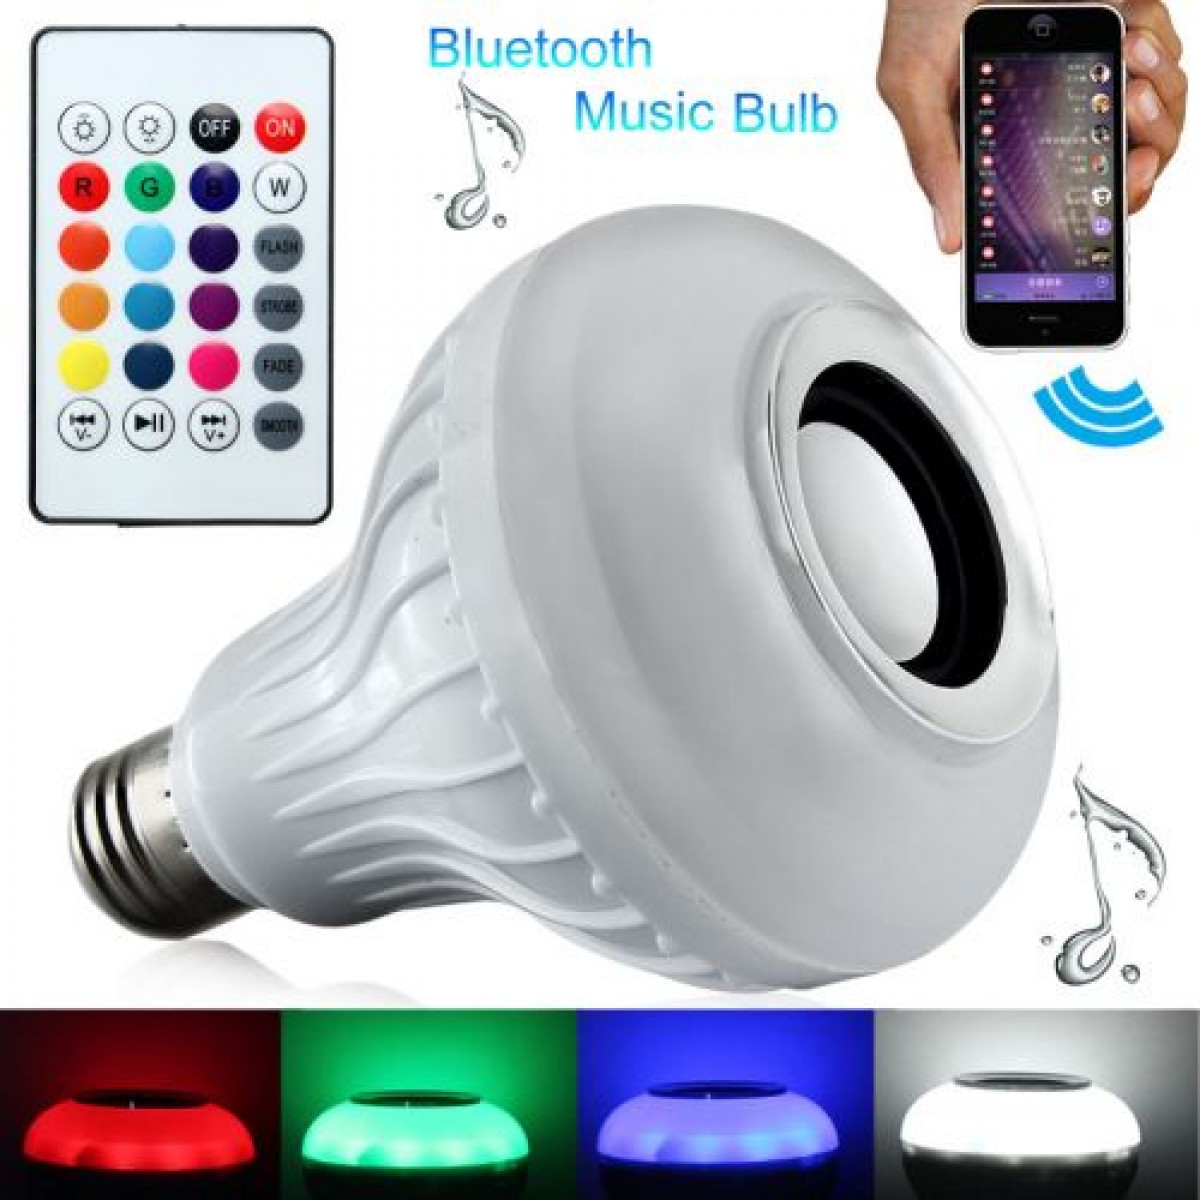 Λάμπα LED E27 με Ηχείο Bluetooth και Ασύρματο Χειριστήριο Globostar RGBW - Wireless HI LED Λάμπα E27 Bluetooth με Ηχείο και Χειριστήριο Globostar RGBW - RGB Hi LED Wireless Bluetooth Control Smart Bulb Music Audio Speaker Ligh